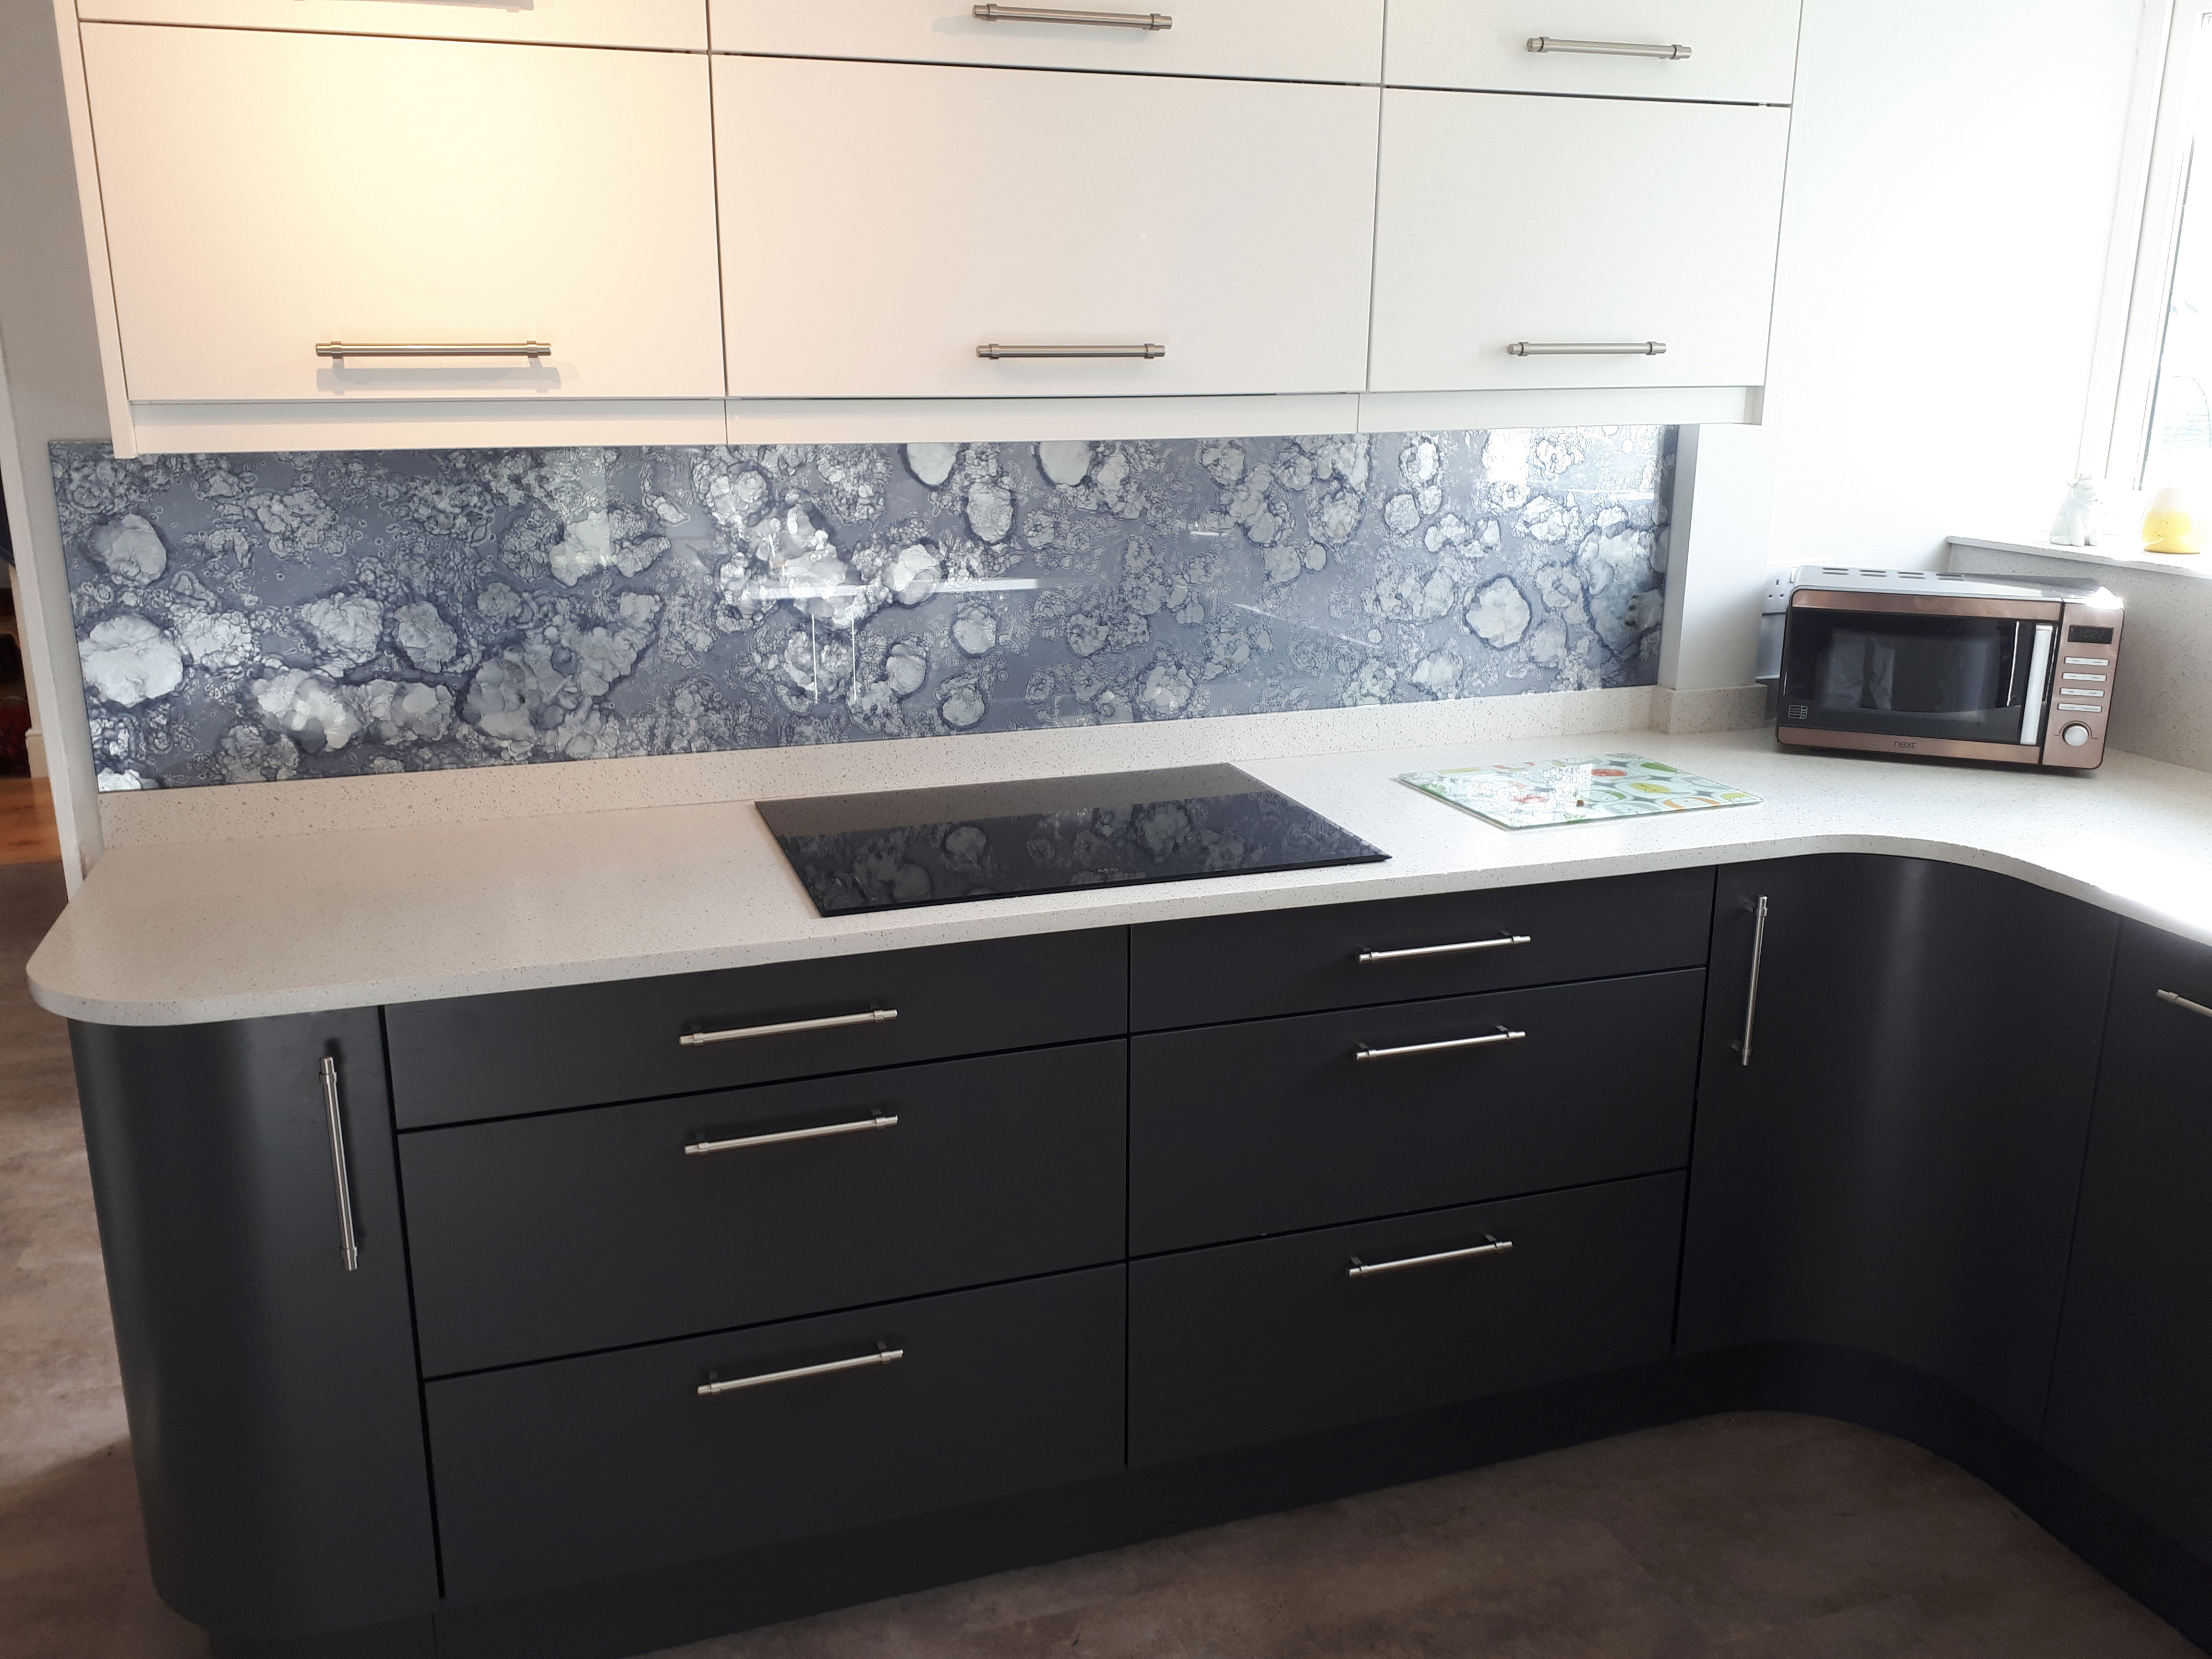 Damasco Sodalite Splashback